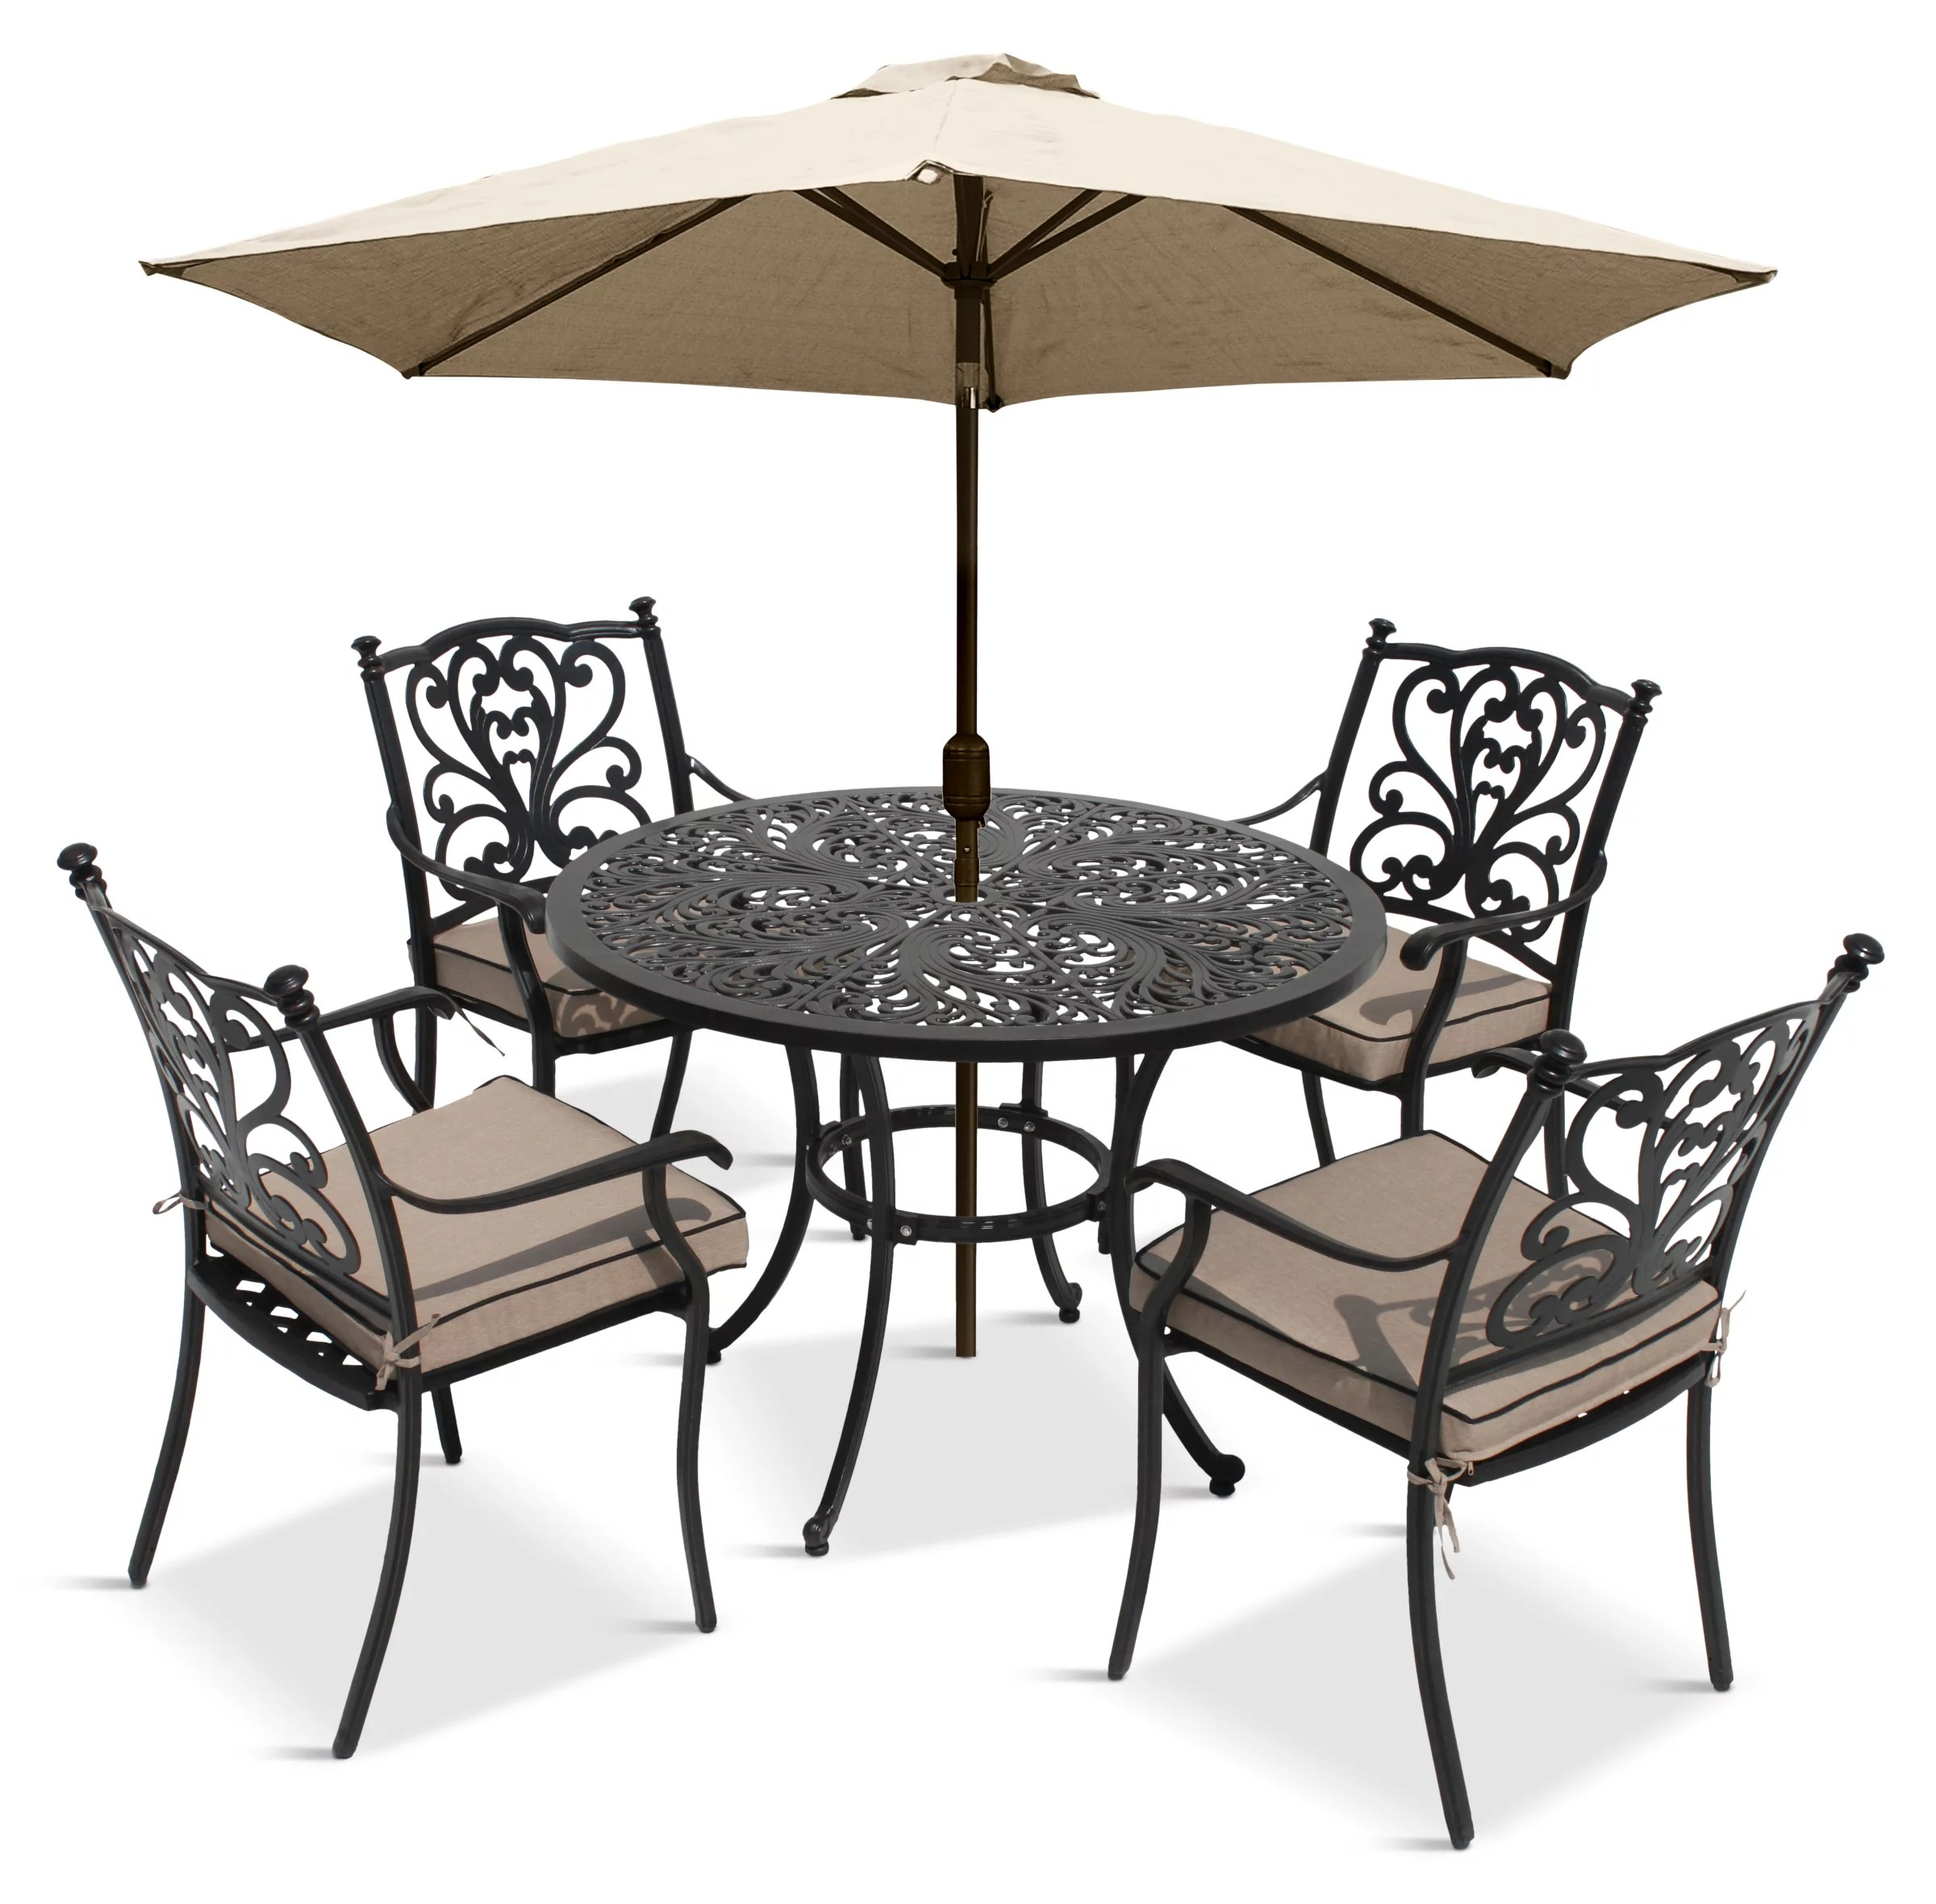 Outdoor Table And Chair Set Lg Outdoor Devon 4 Seater Garden Dining Table And Chairs Set With